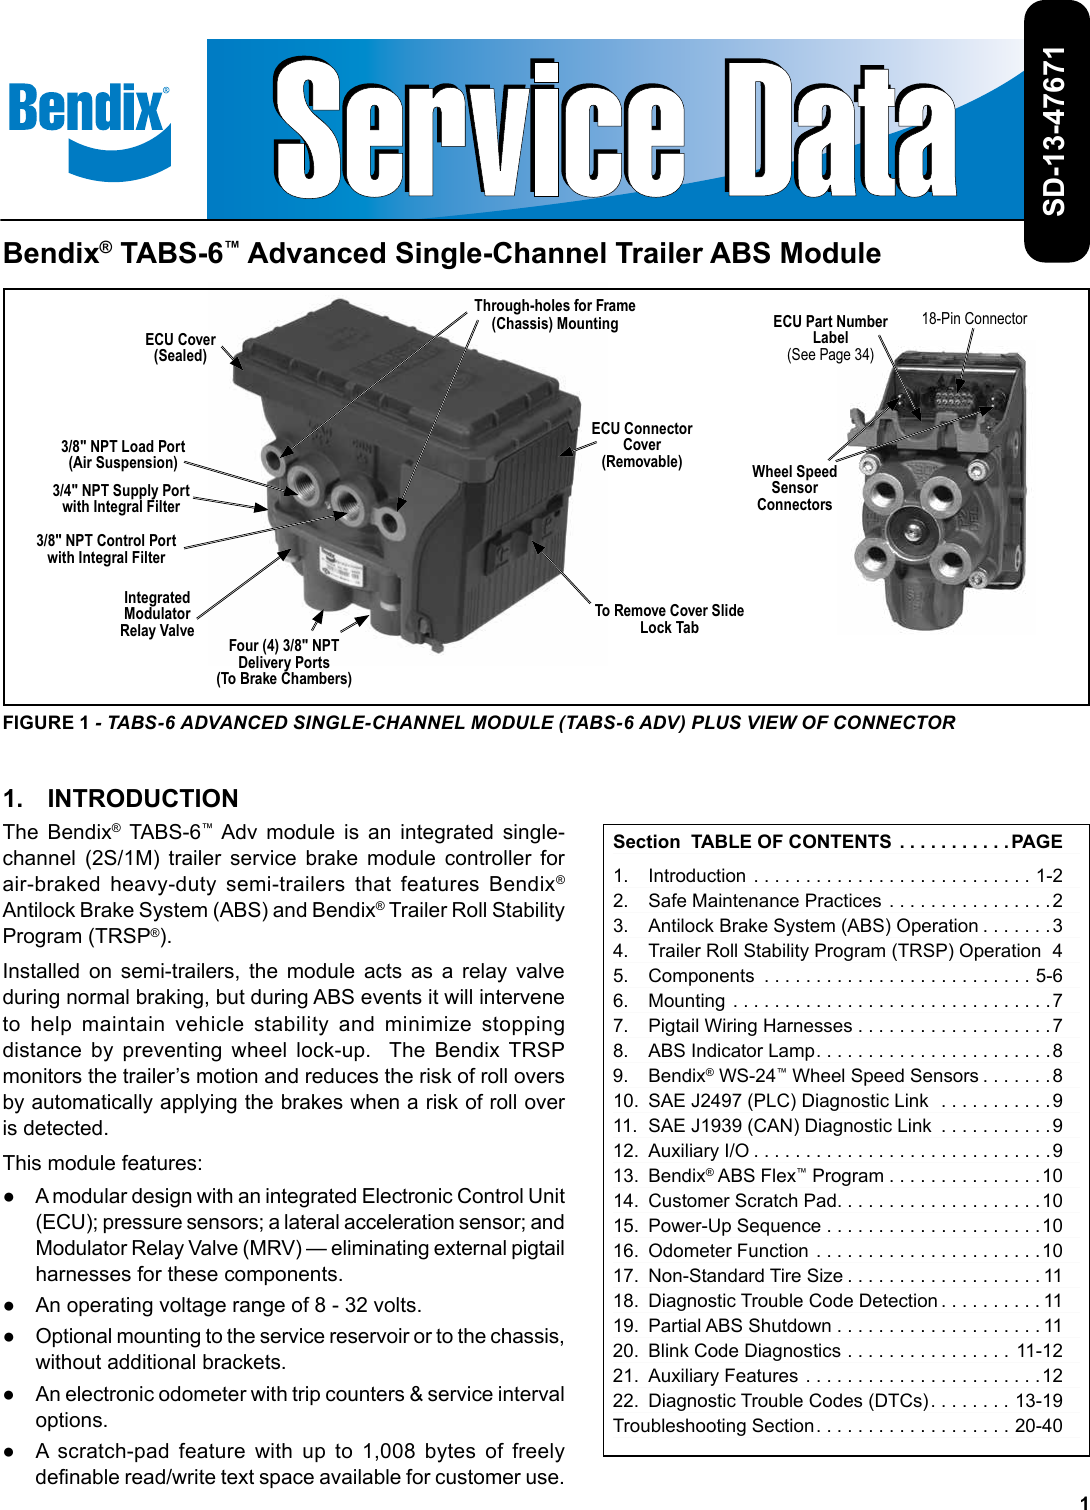 bendix abs wiring diagram bendix bw2718 users manual  bendix bw2718 users manual